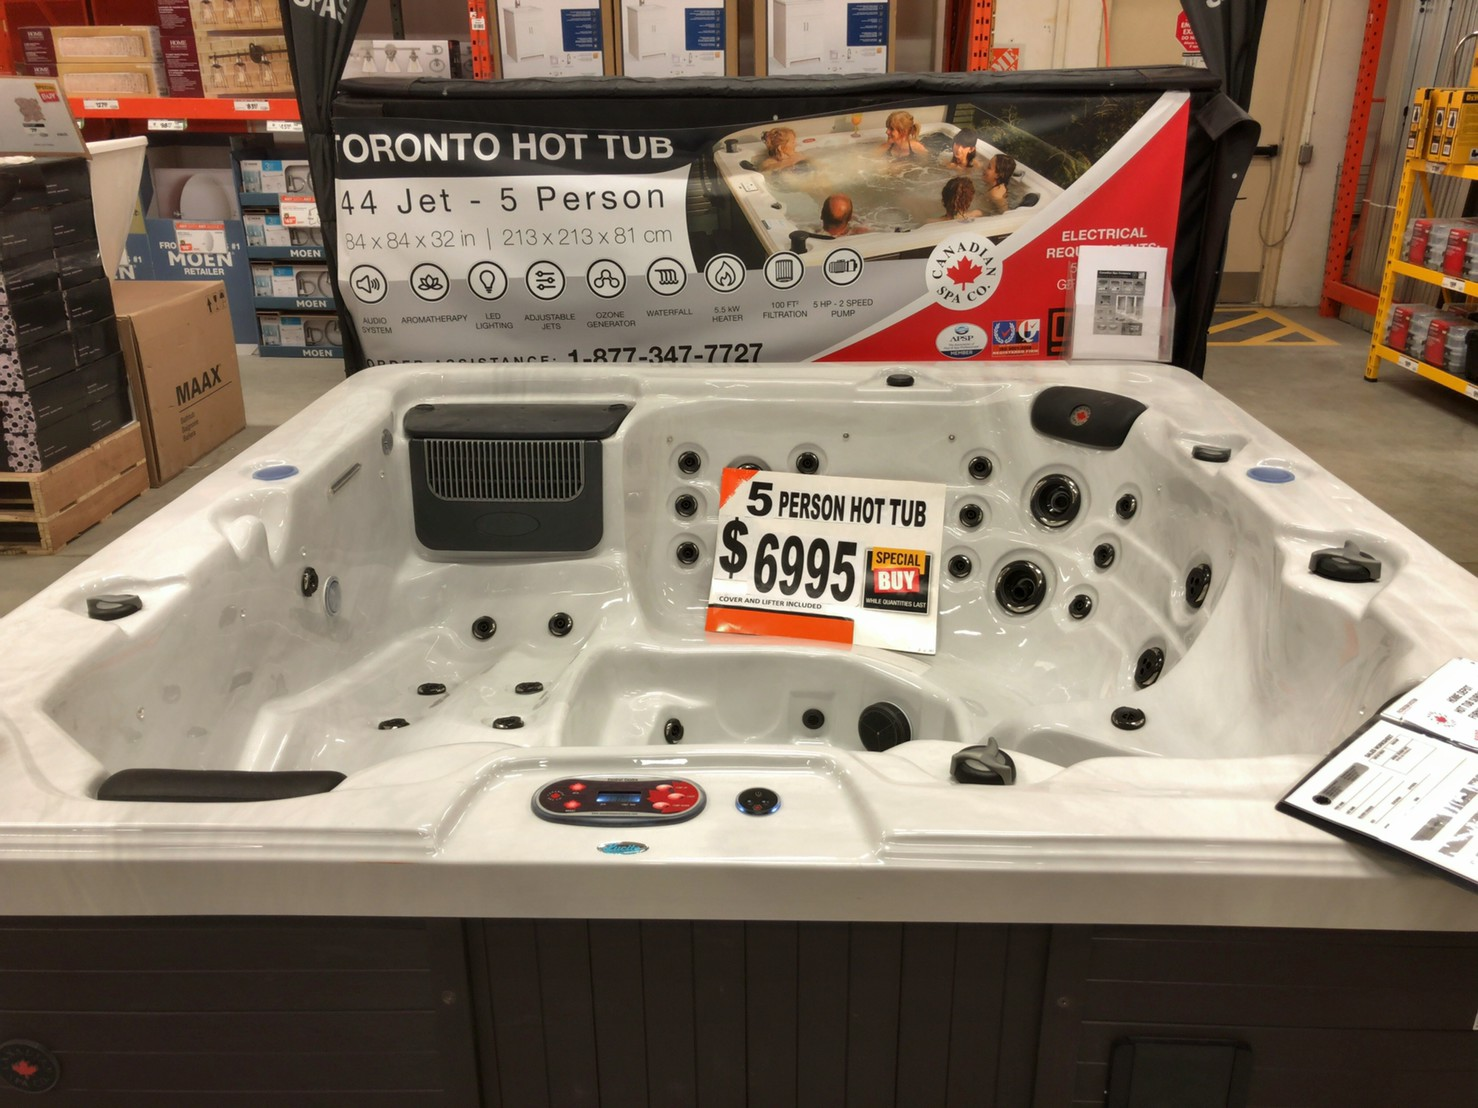 The home depot Bathtub ①